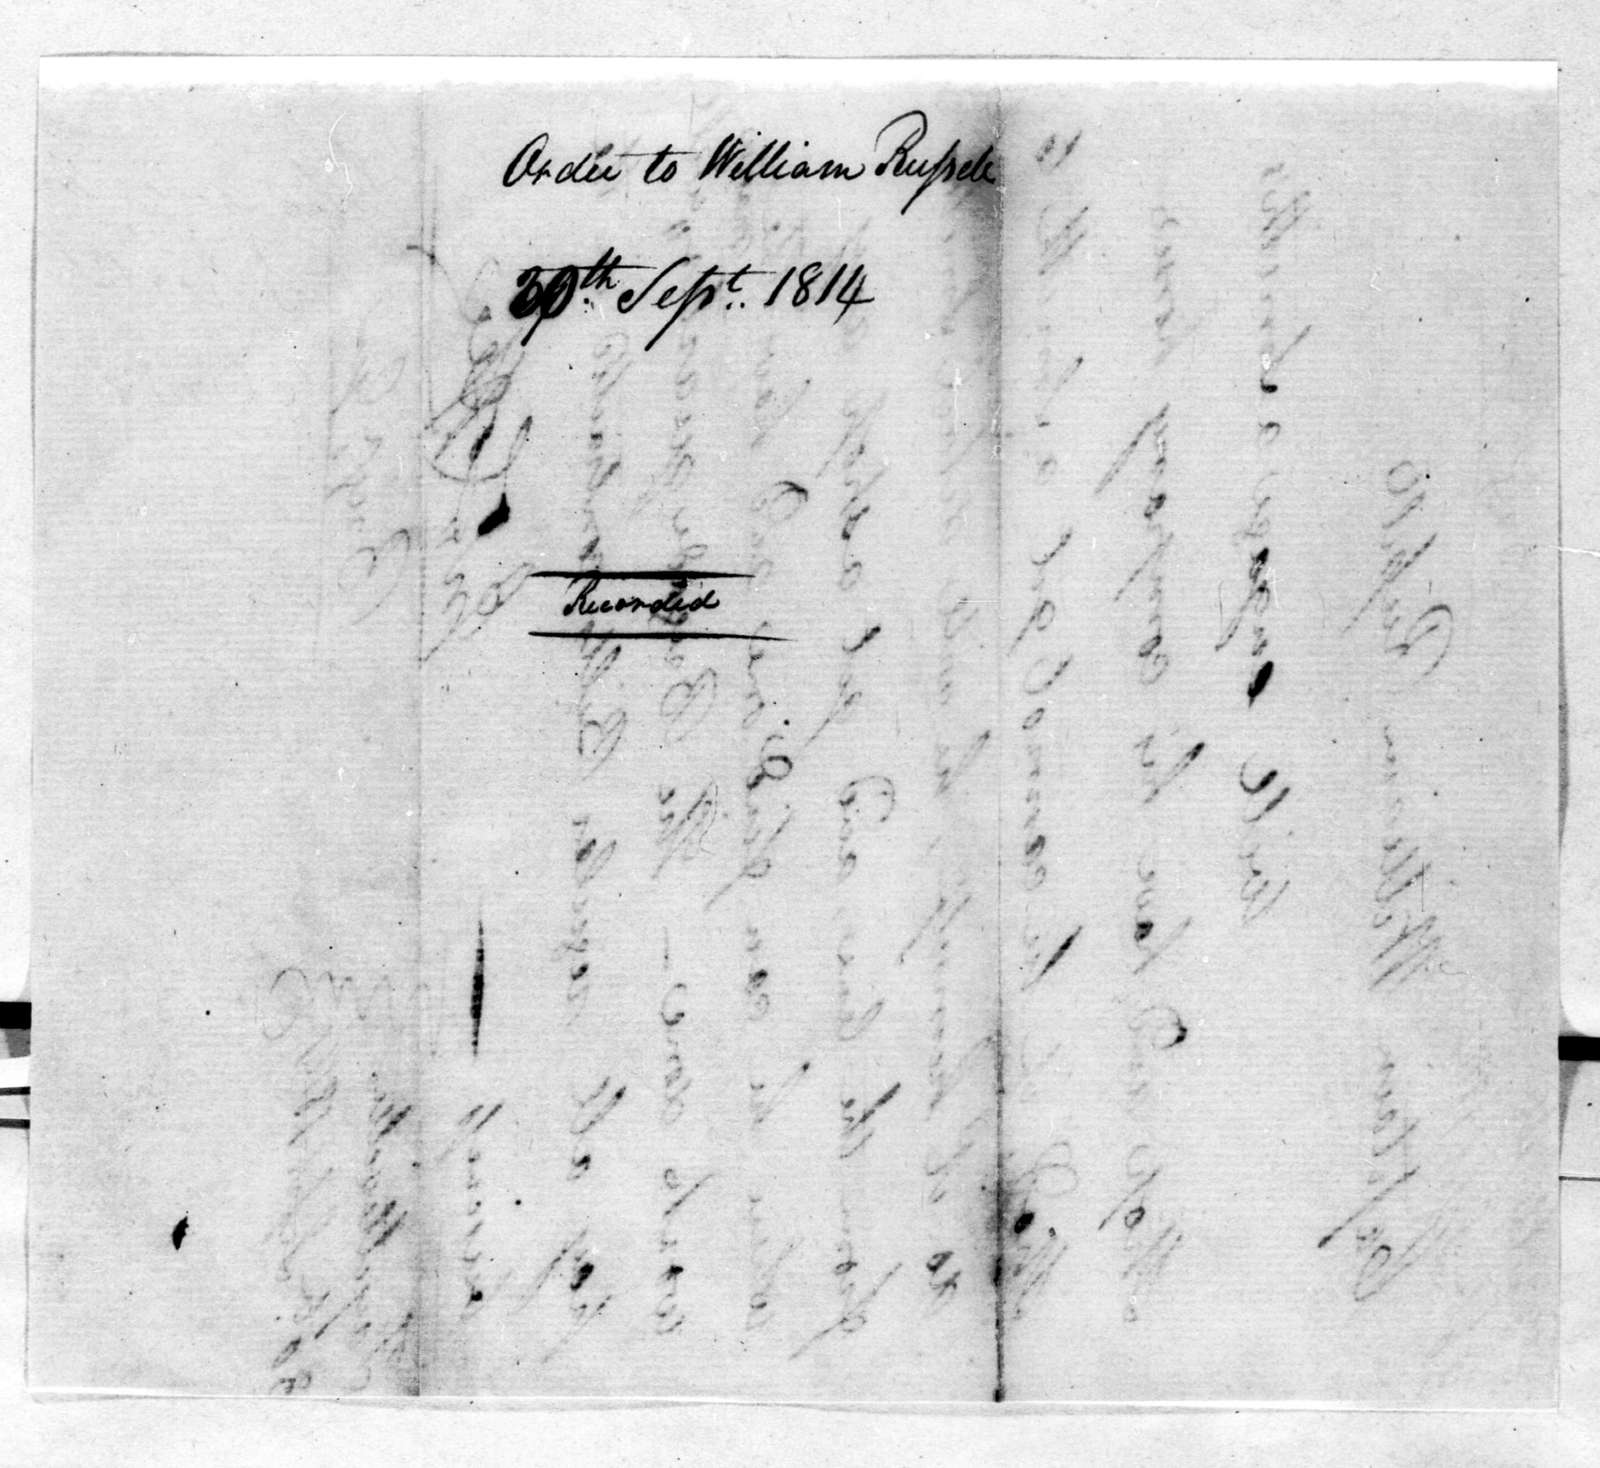 John Coffee to William Russell, September 30, 1814